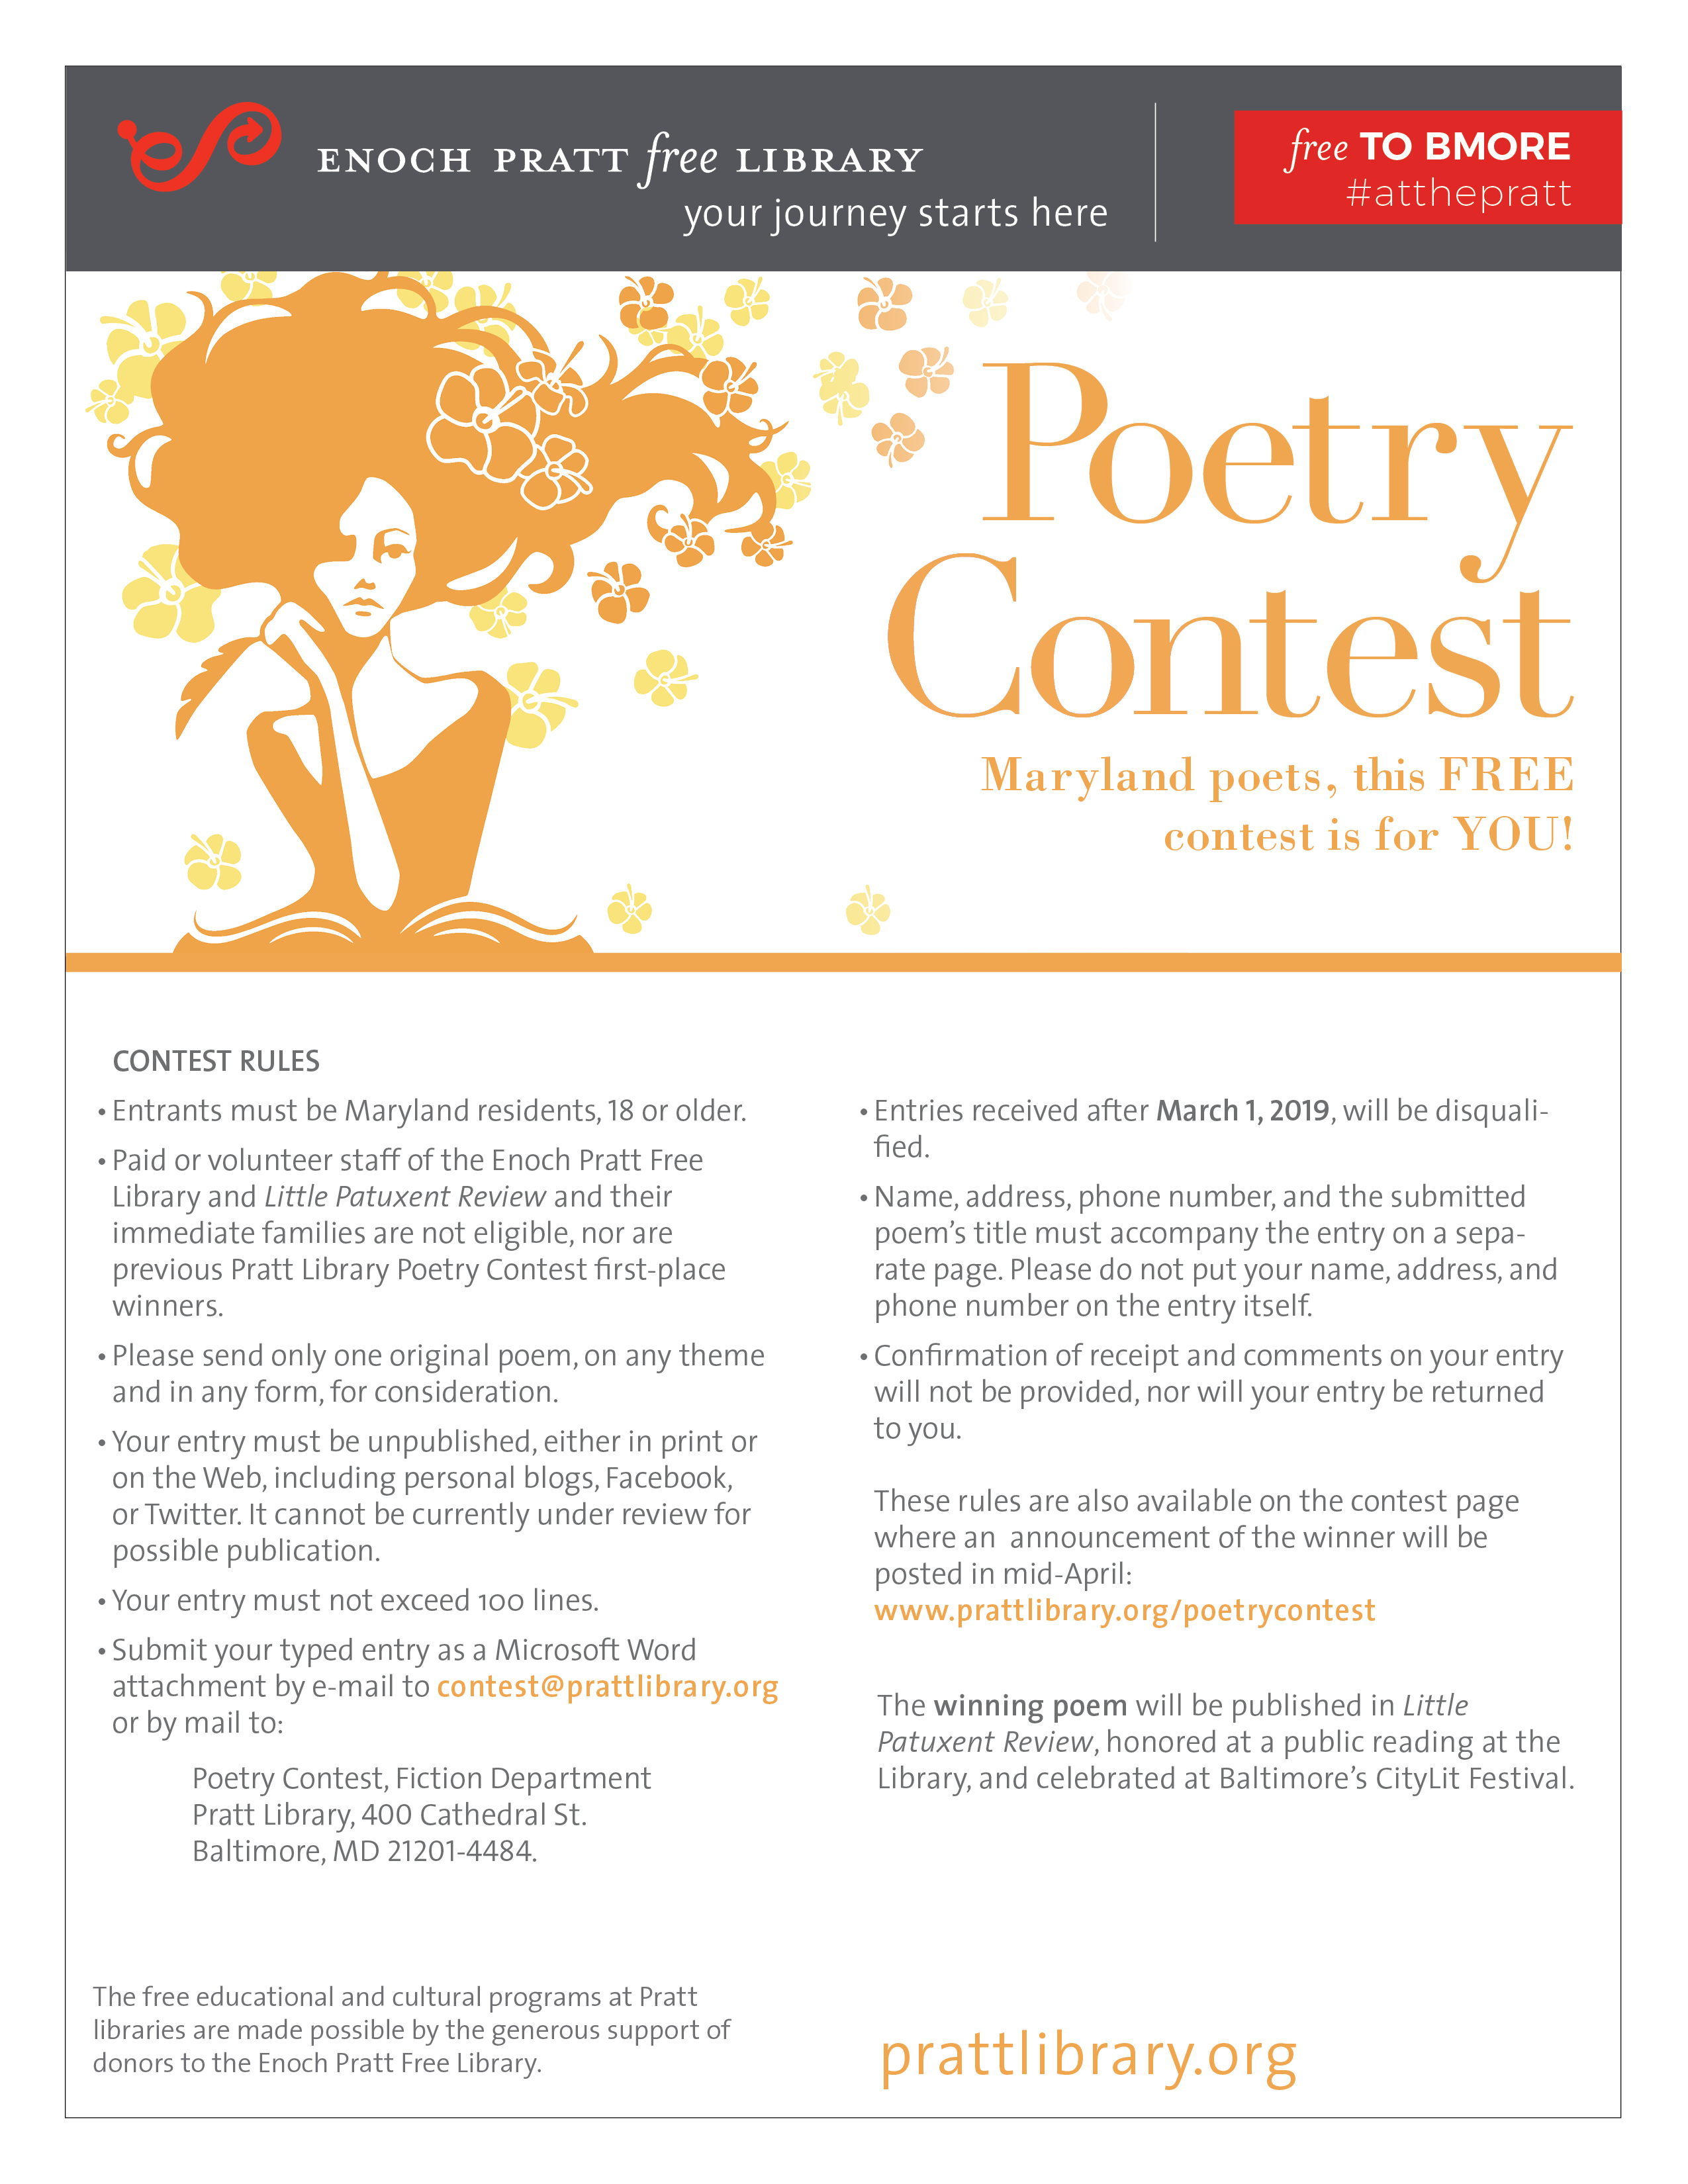 Free Poetry Contest with Enoch Pratt Free Library — Deadline March 1